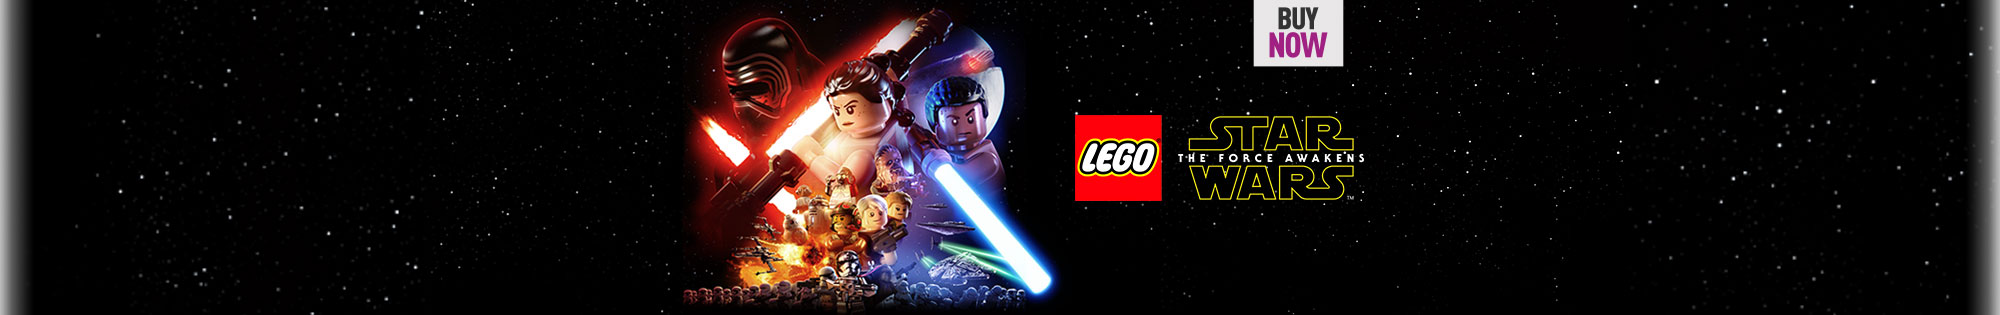 LEGO Star Wars The Force Awakens including Only At GAME Deluxe Edition on Xbox One, PS4, Wii U, 3DS, PC, Xbox 360 and PS3 - Pre-order Now at GAME.co.uk